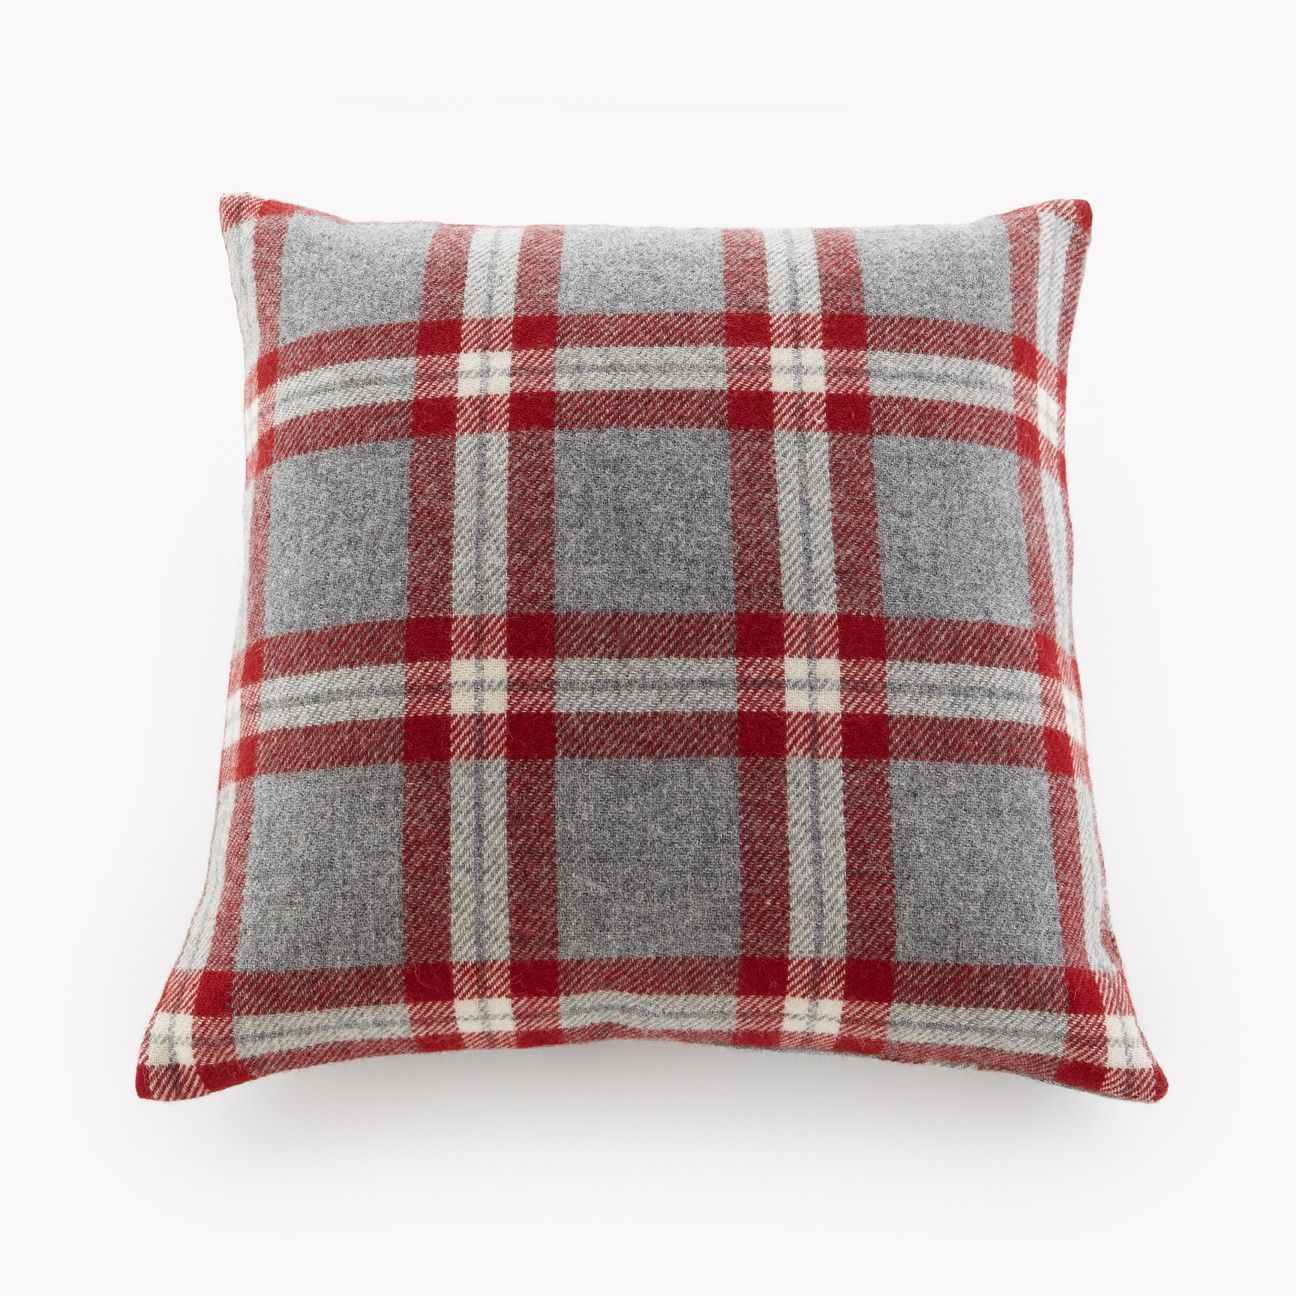 Red And Grey Plaid Pillow Made In Minnesota By Faribault